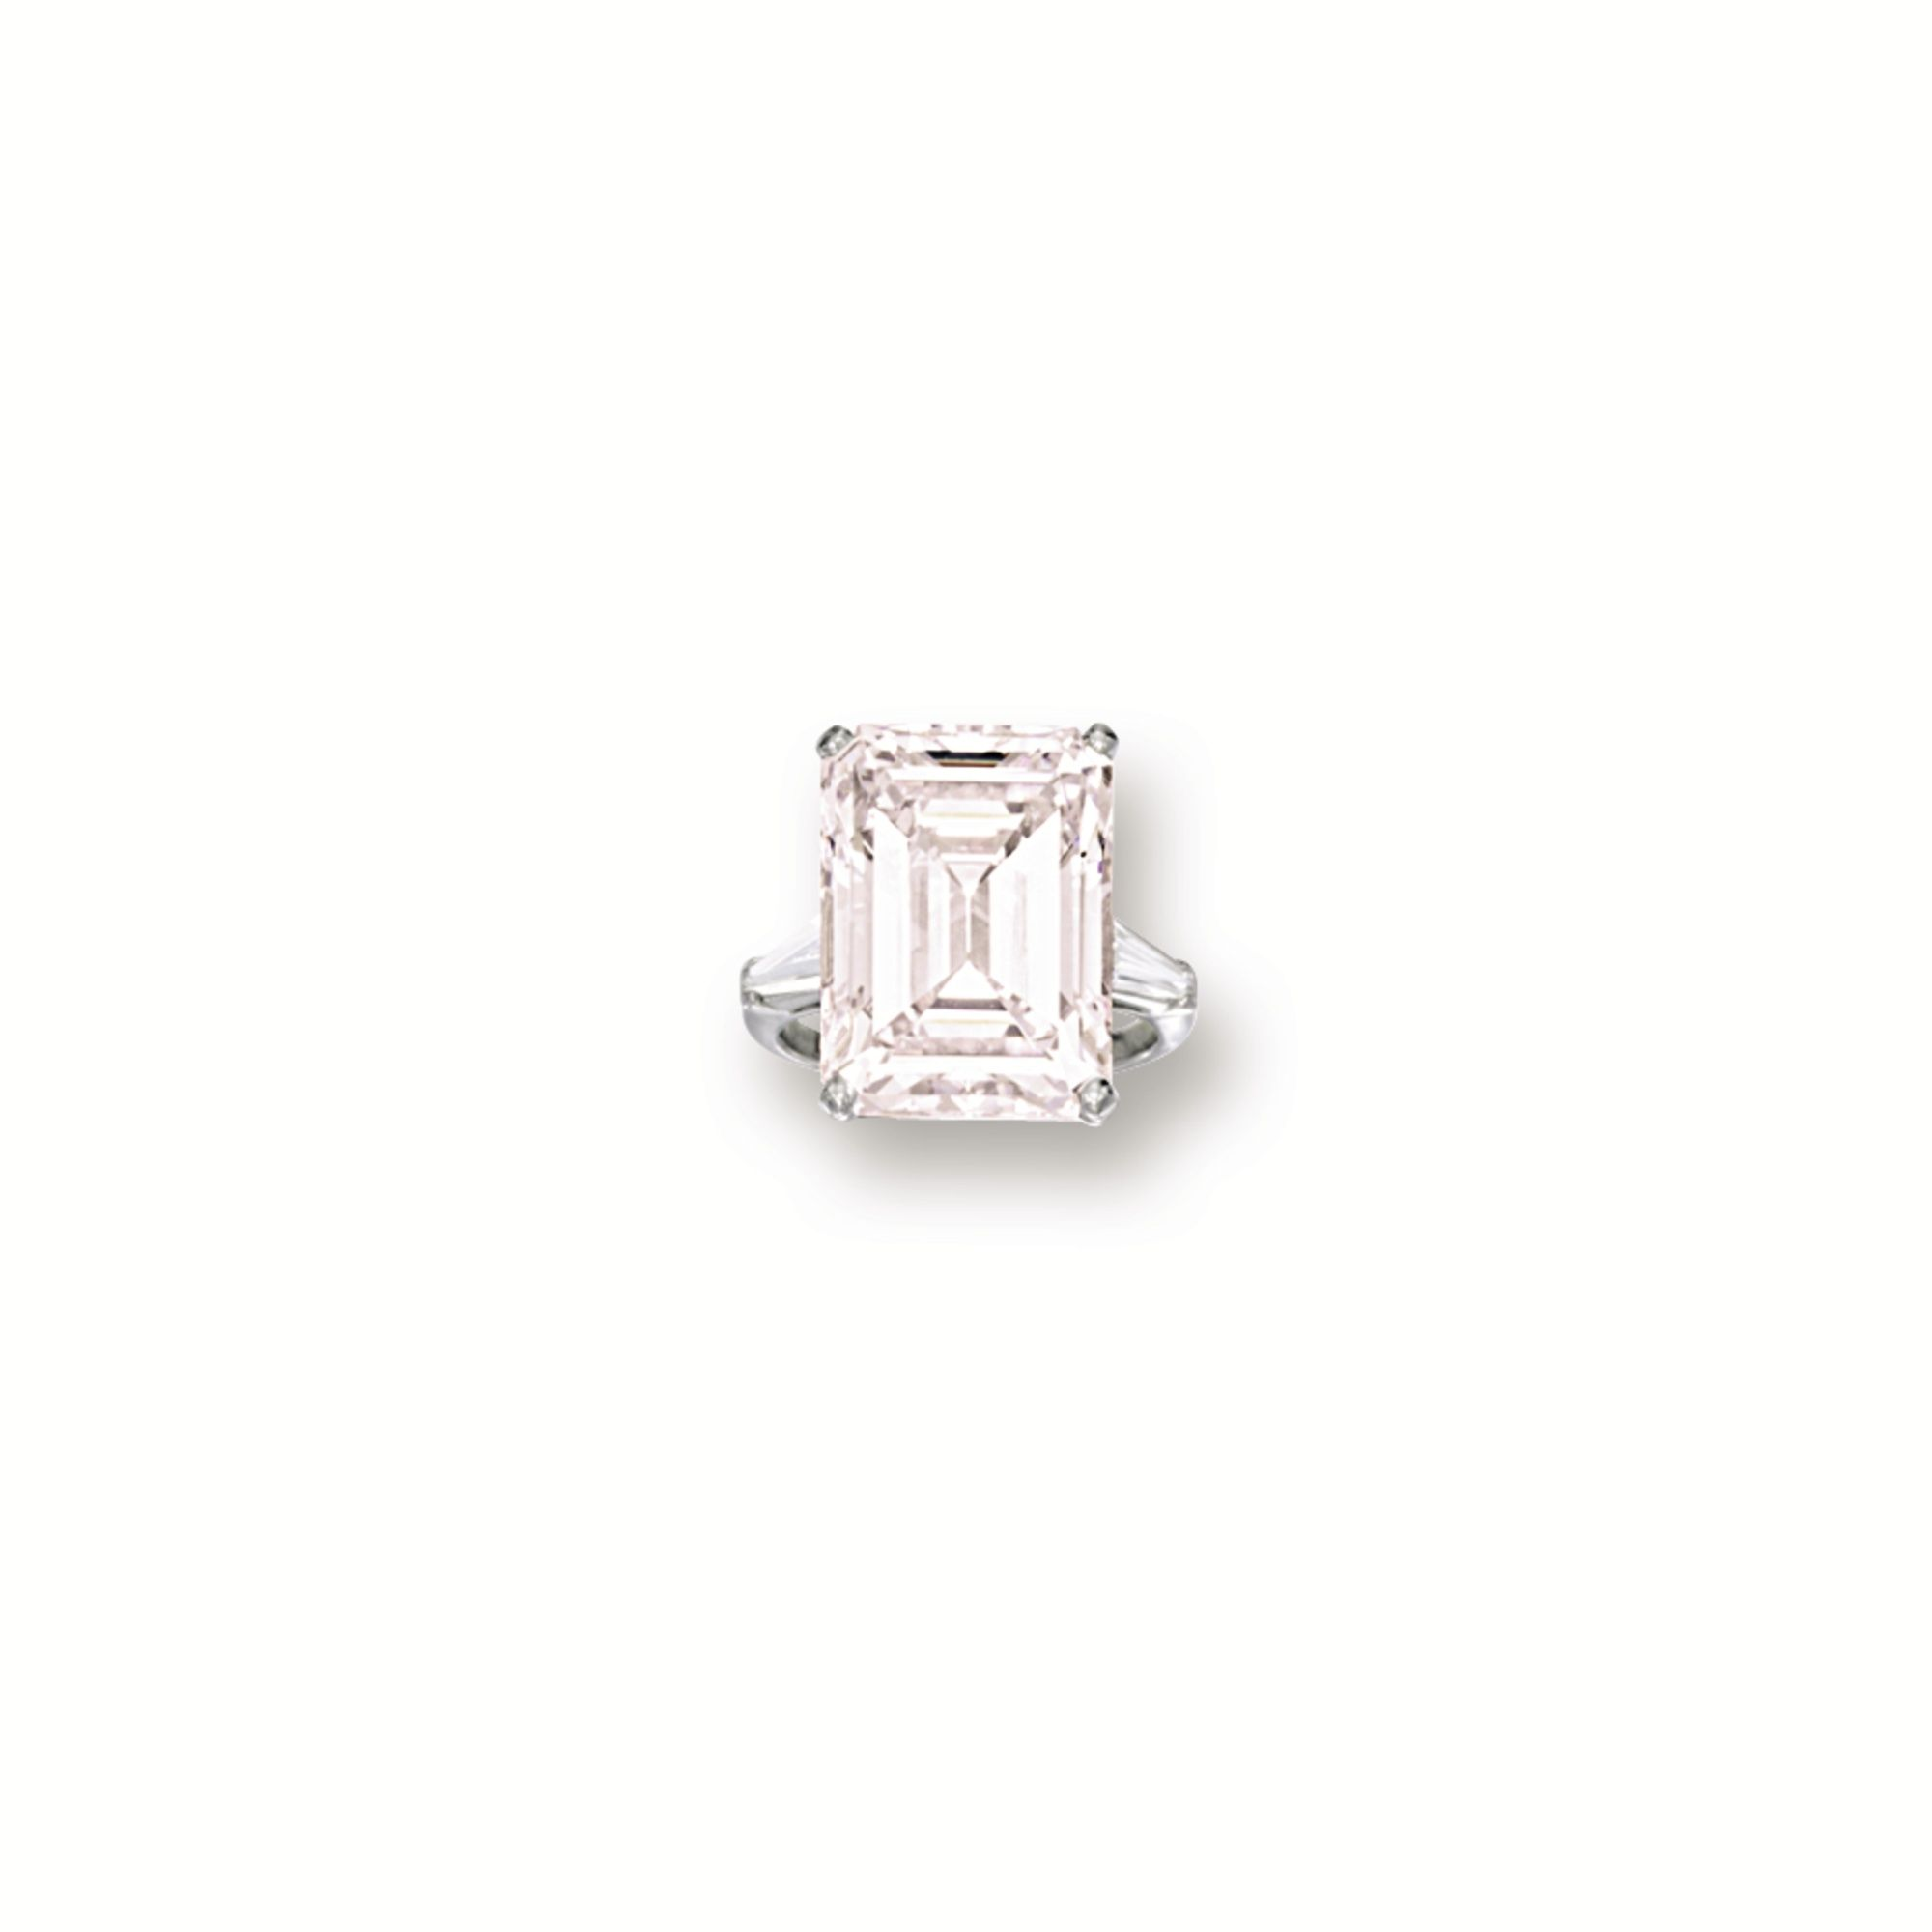 Light Pink Diamond And Diamond Ring Cartier Centring On An Emerald Cut Light Pink Diamond Weighing 13 19 Carats Flanked On Each Side By A Tapered Baguette